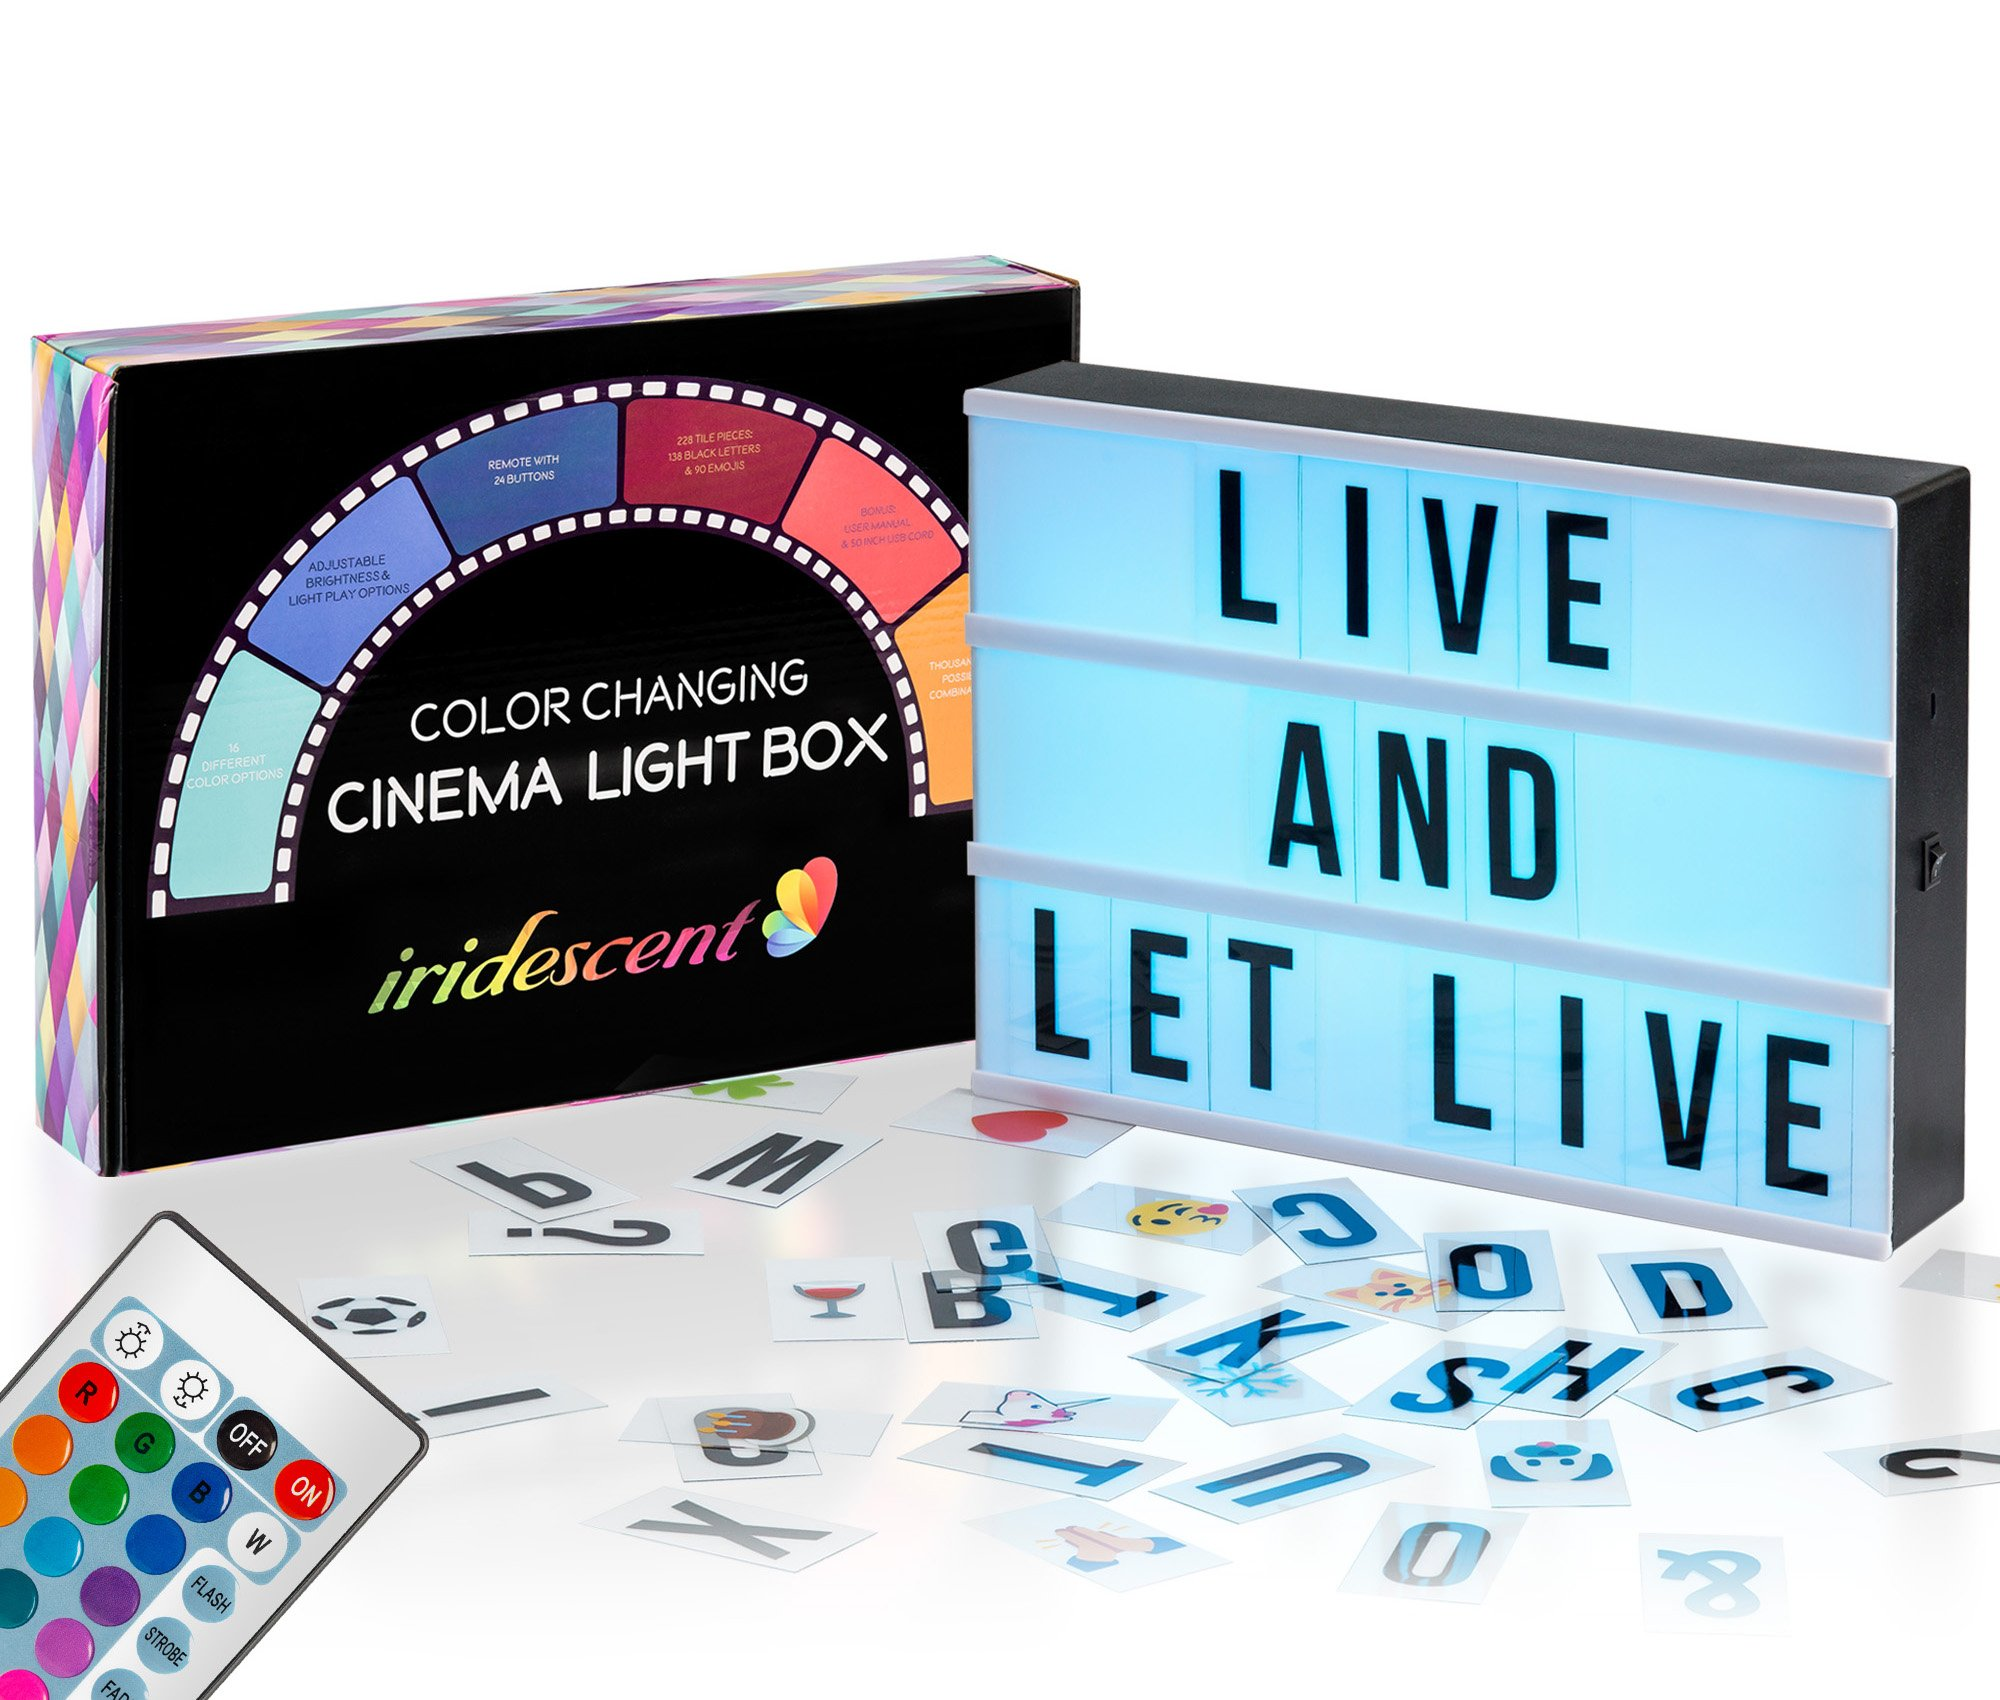 Color Changing Cinema Light Box with Letters - 228 Total Letters, Numbers & Emojis | 16 Colors Remote-controlled PREMIUM Cinematic Marquee Sign Light Box | NEW for 2018! LED Light Up Letter Box Sign by Iridescent